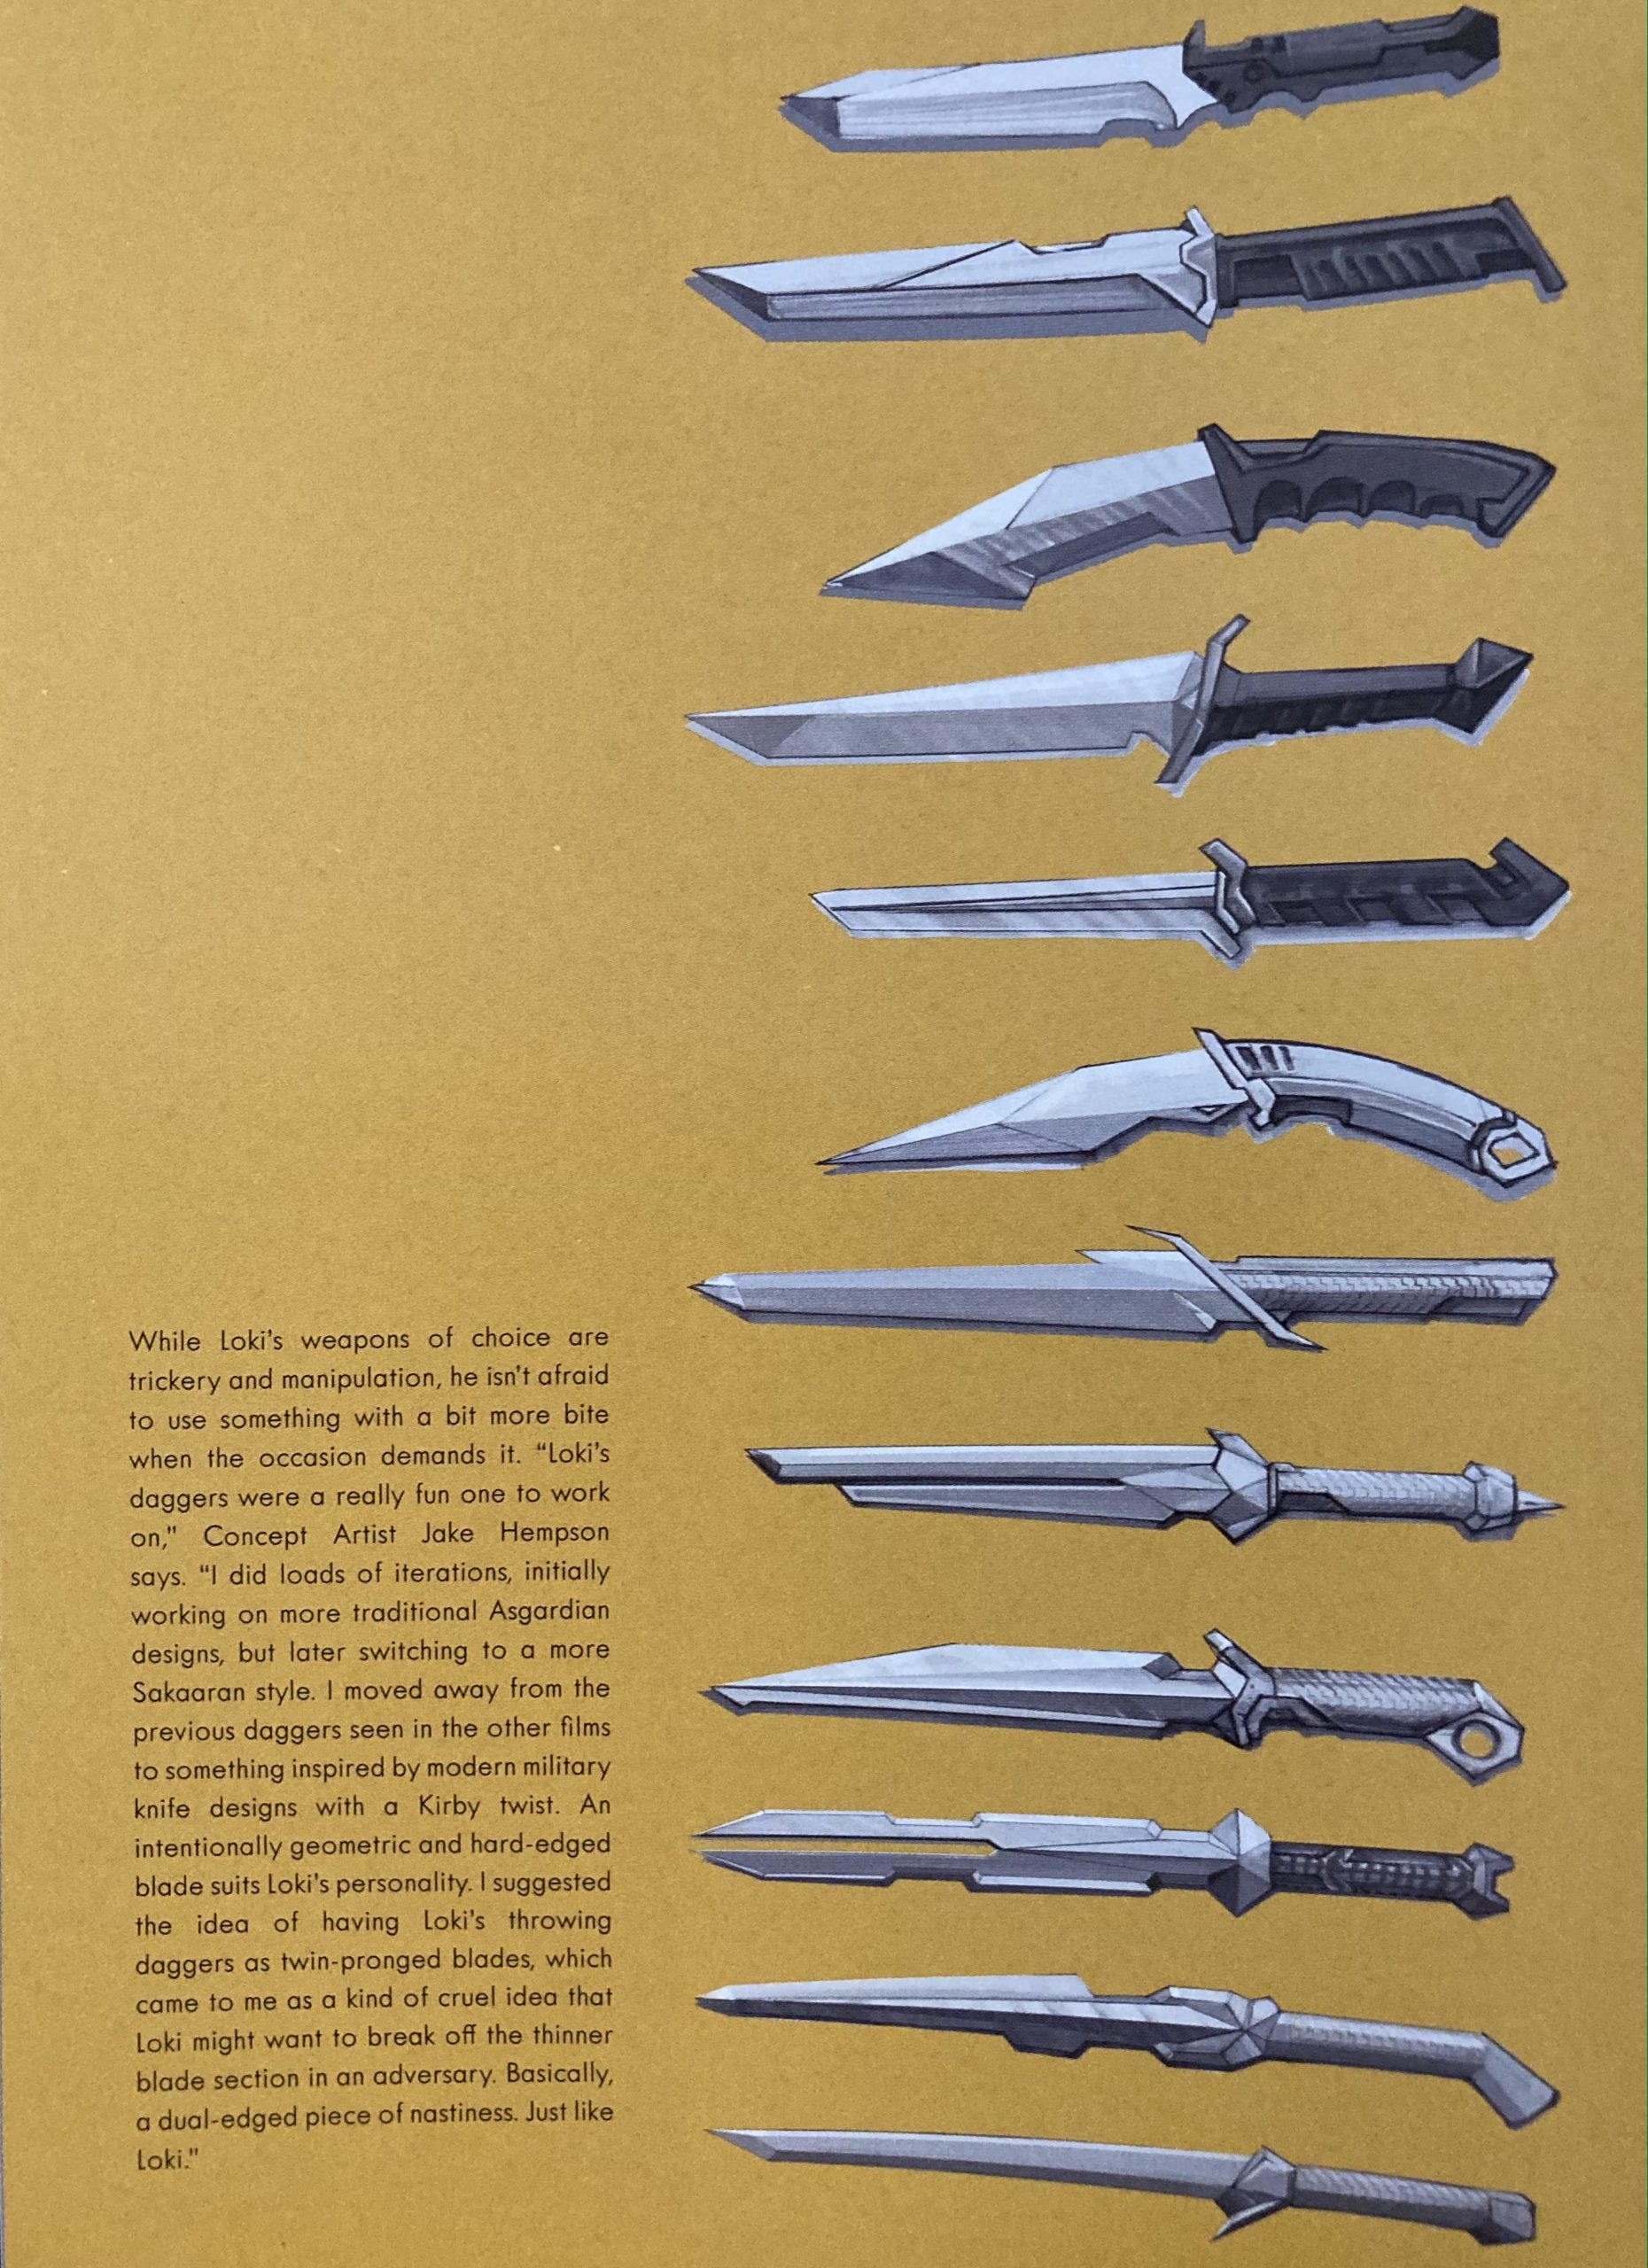 Loki's knives in The Art of the Movie